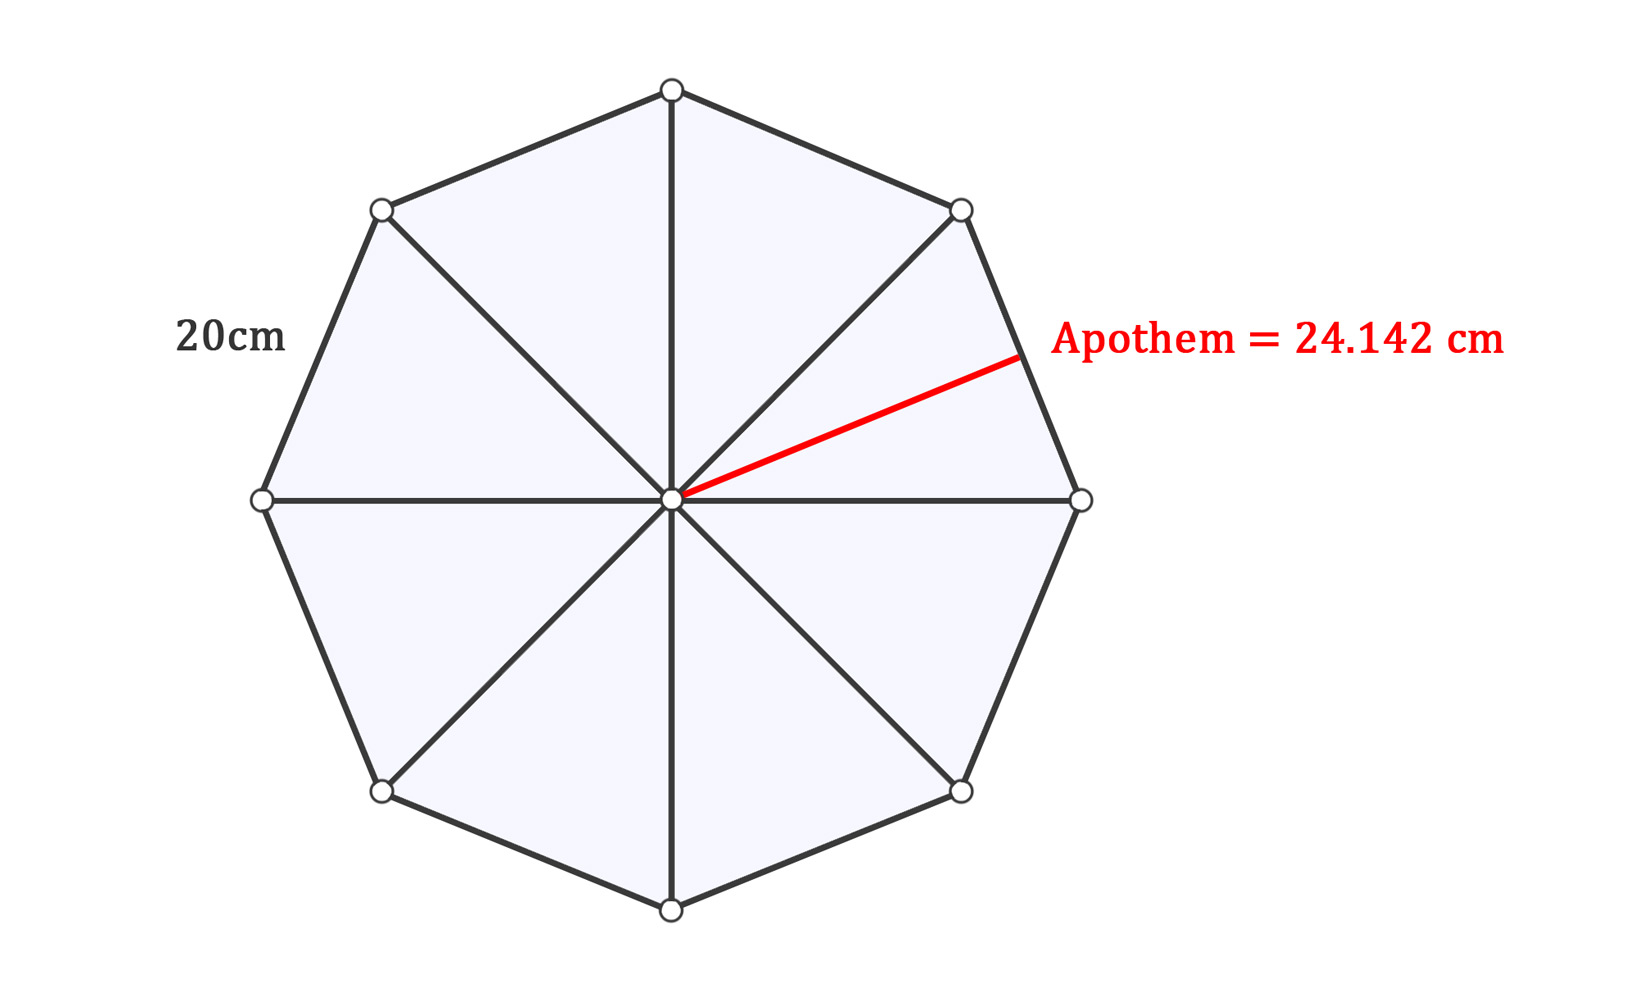 How To Find The Area Of Regular Polygons With Examples